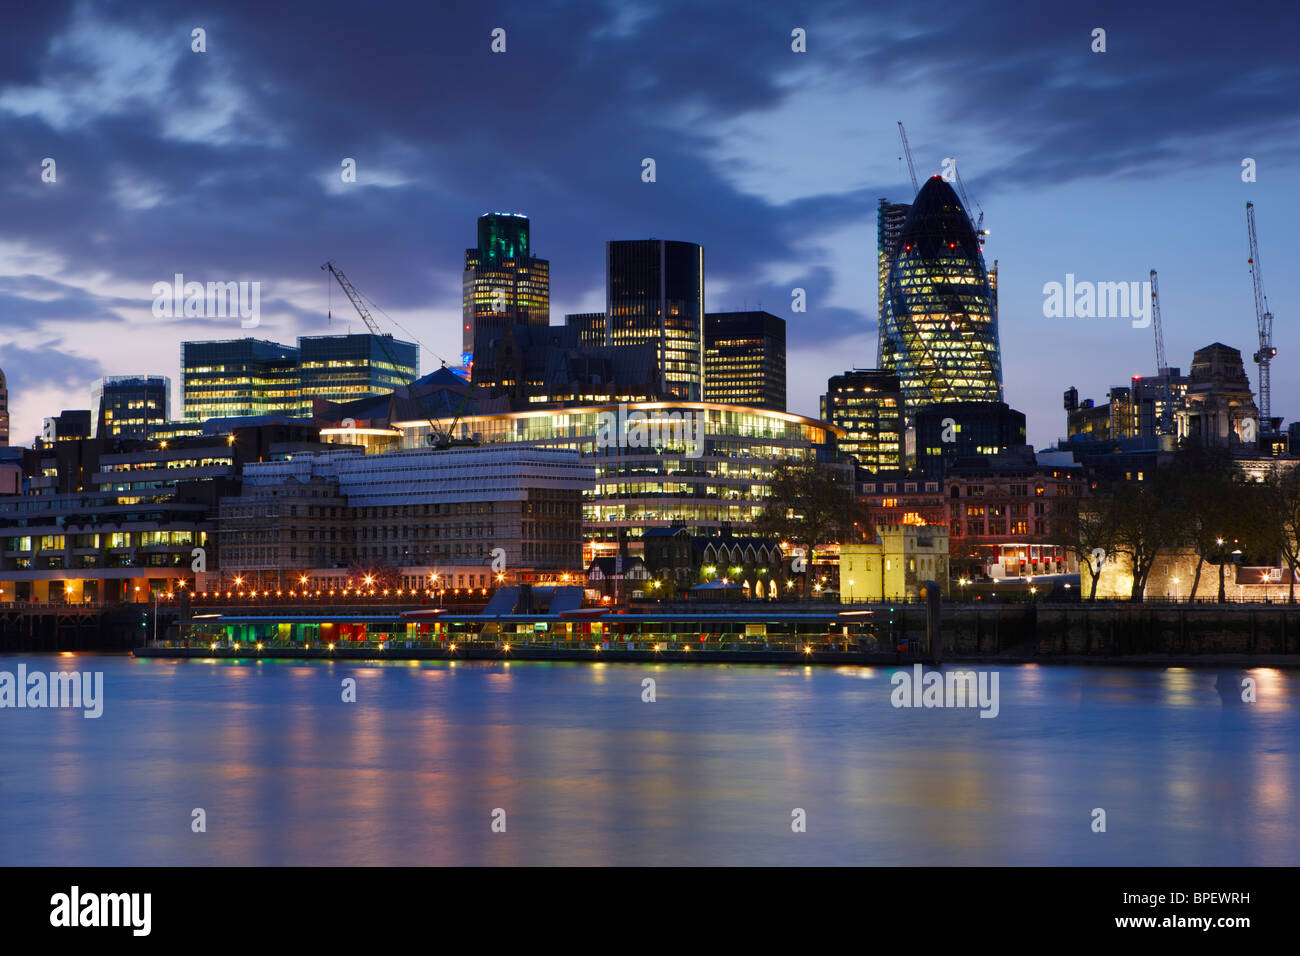 View over the River Thames at night looking toward the financial heart of the City of London - Stock Image